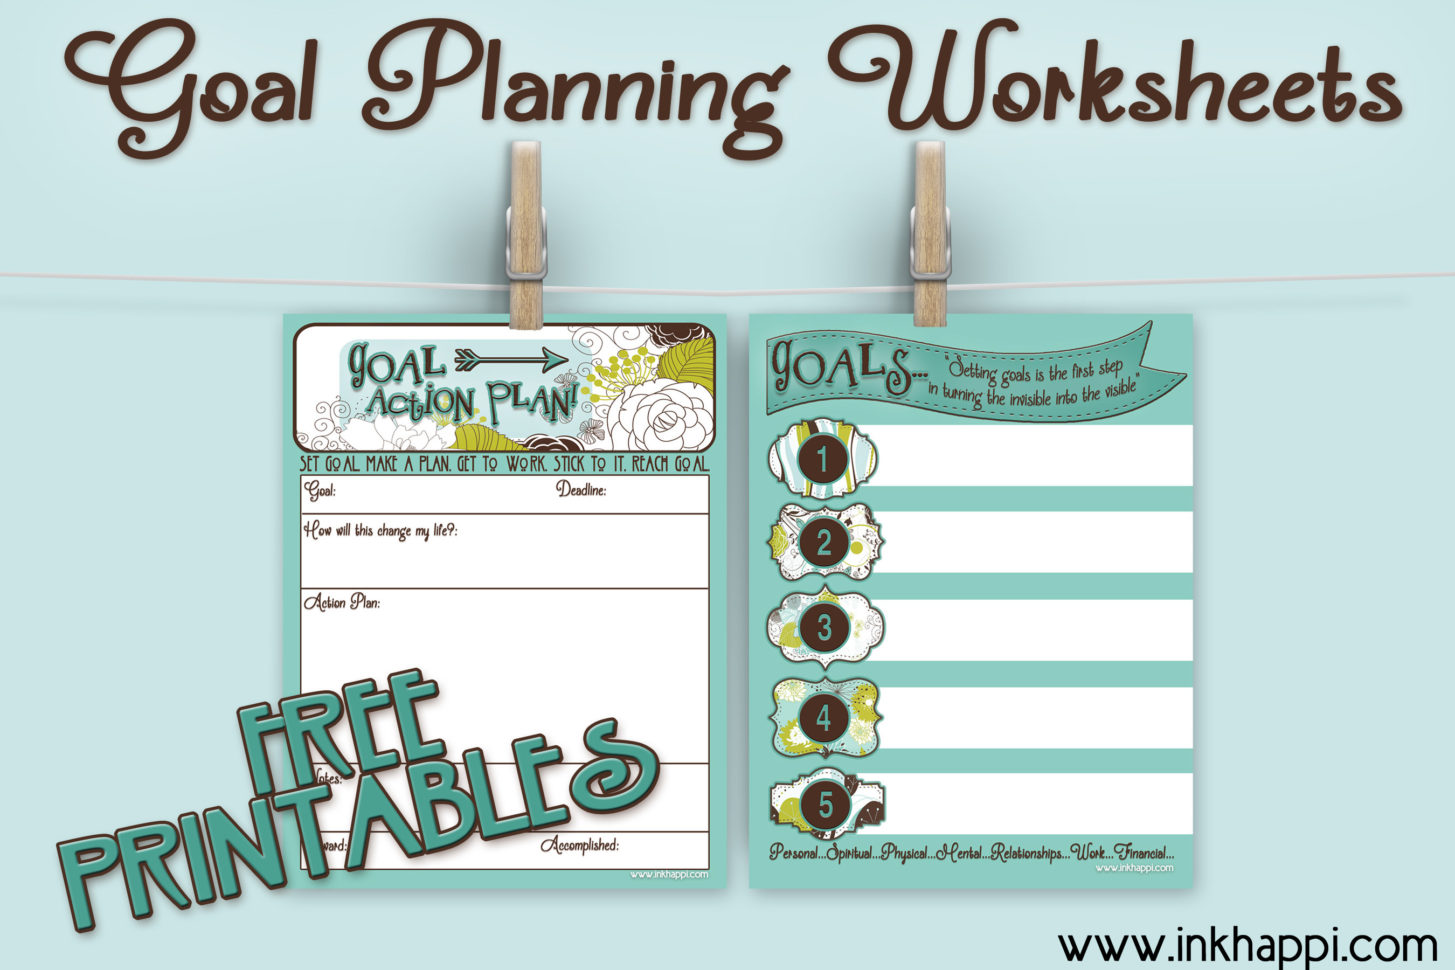 Goal Planning Worksheets With Free Printables Inkhappi